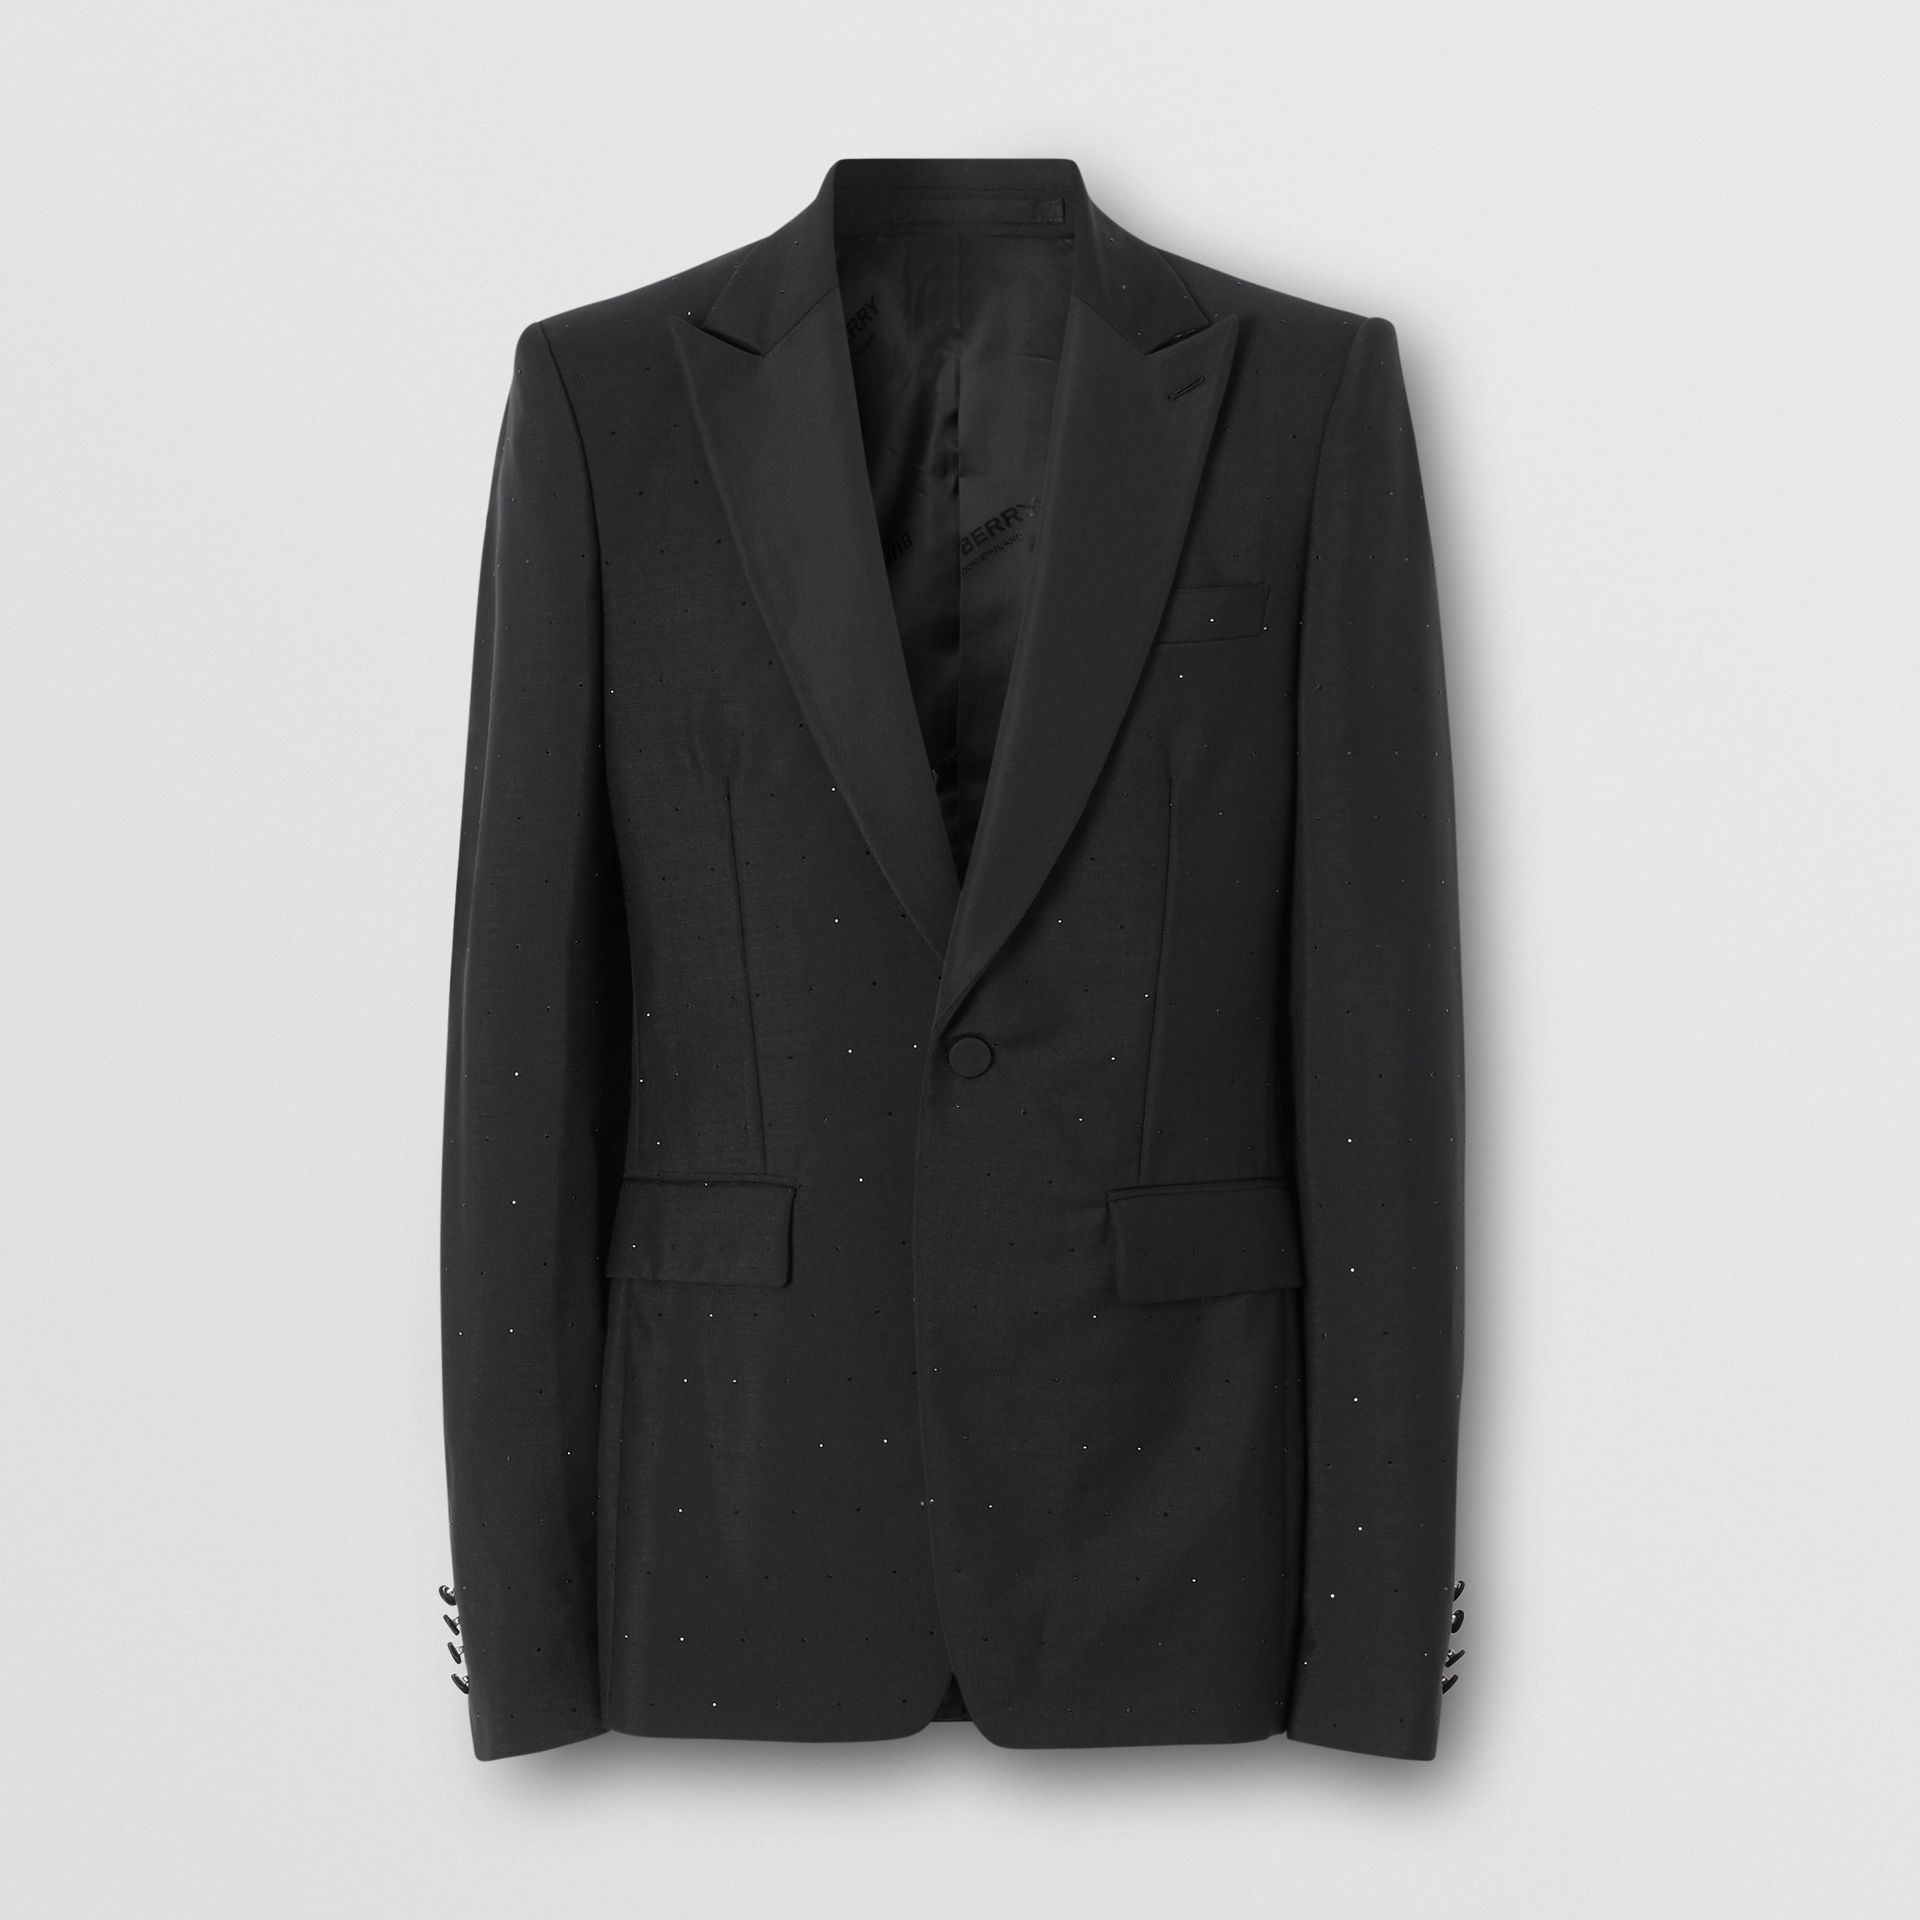 English Fit Embellished Wool Mohair Tailored Jacket in Black - Men | Burberry - gallery image 3